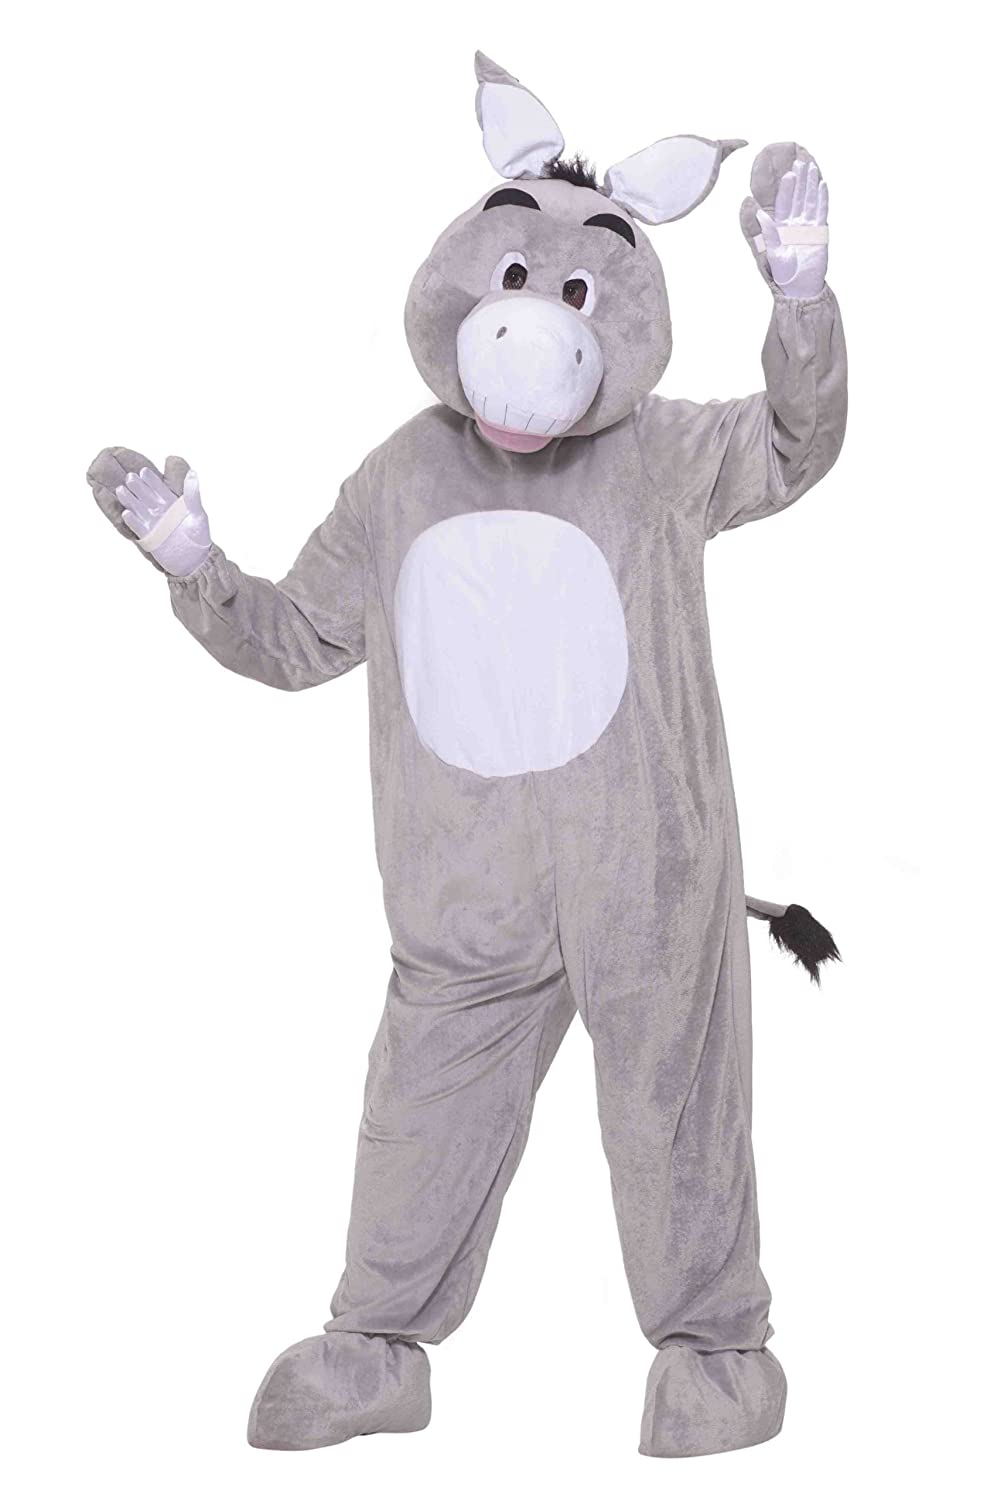 Amazon.com Forum Novelties Menu0027s Plush Donkey Mascot Costume Multi Standard Clothing  sc 1 st  Amazon.com & Amazon.com: Forum Novelties Menu0027s Plush Donkey Mascot Costume Multi ...